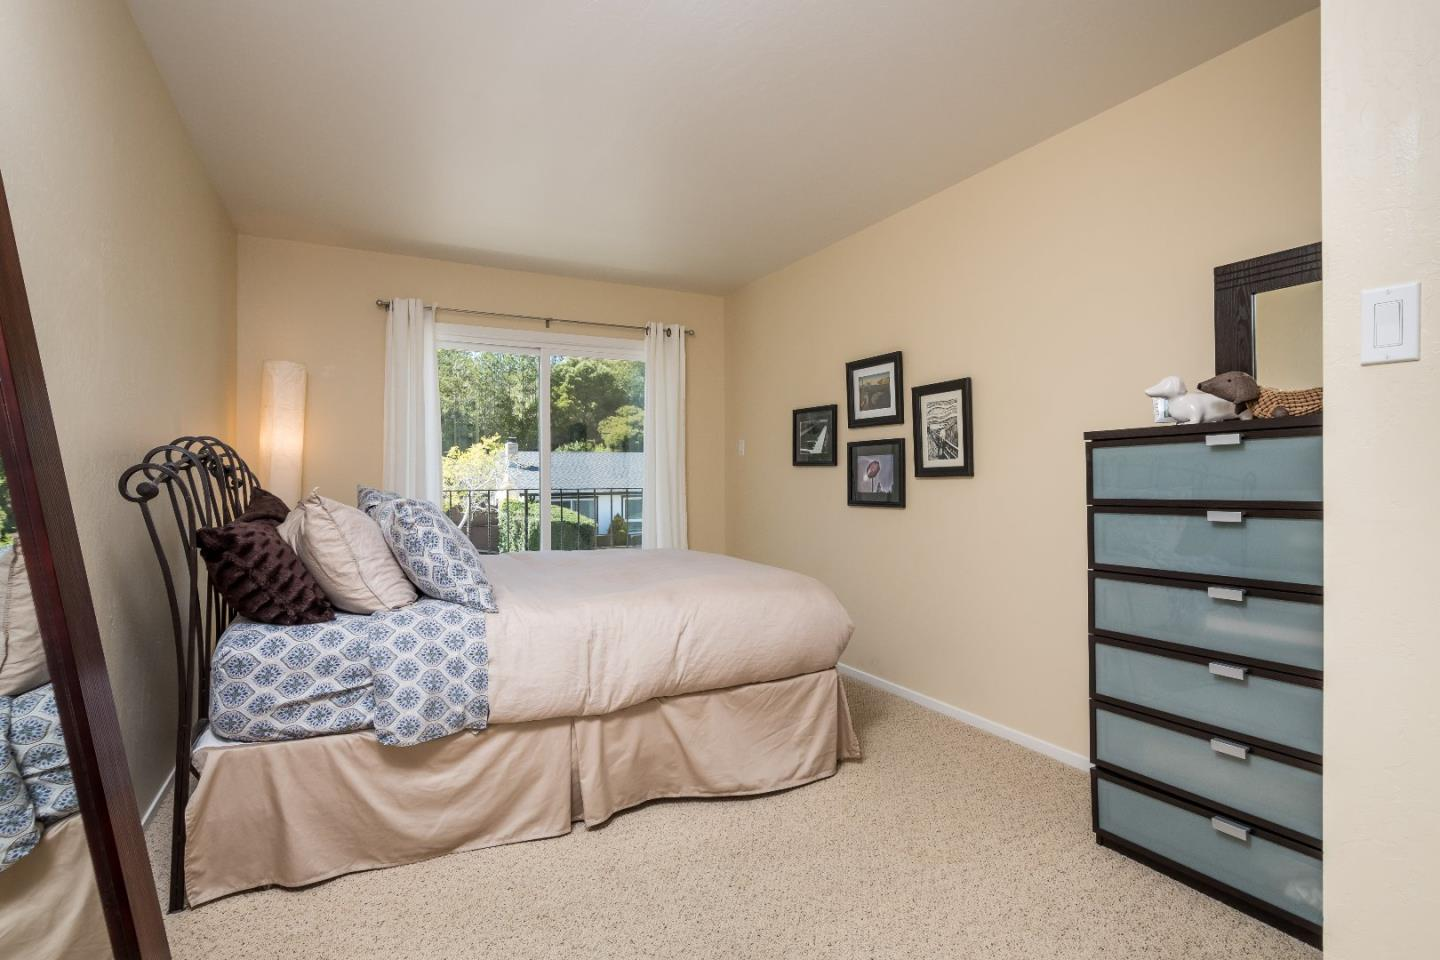 Additional photo for property listing at 1655 Oakwood Dr  SAN MATEO, CALIFORNIA 94403